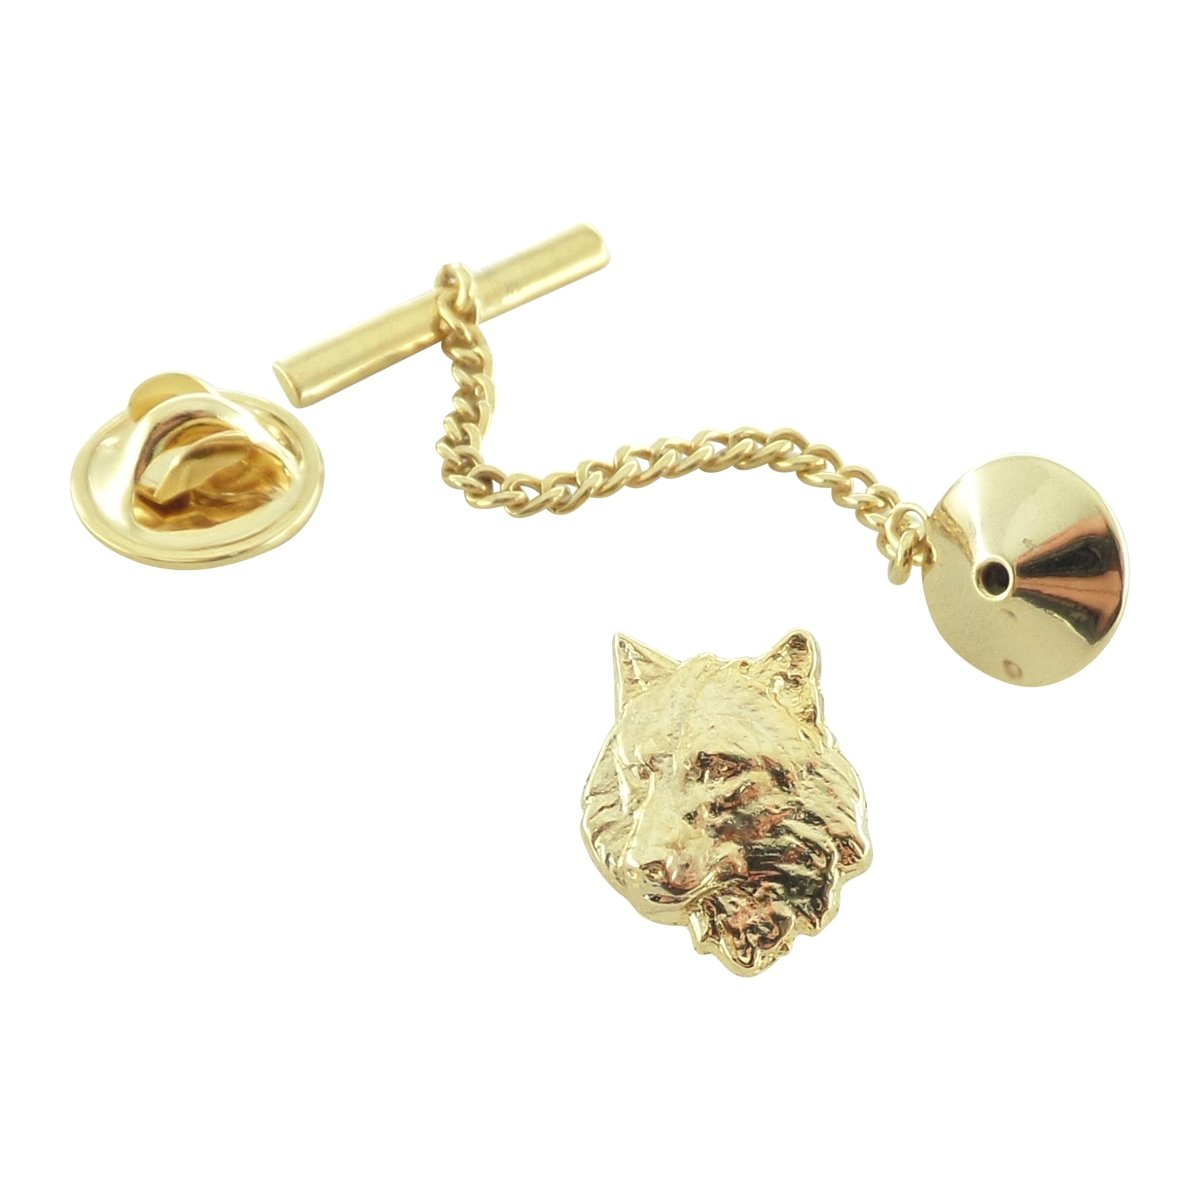 Creative Pewter Designs, Pewter Wolf Tie Tack, Gold Plated, MG041TT